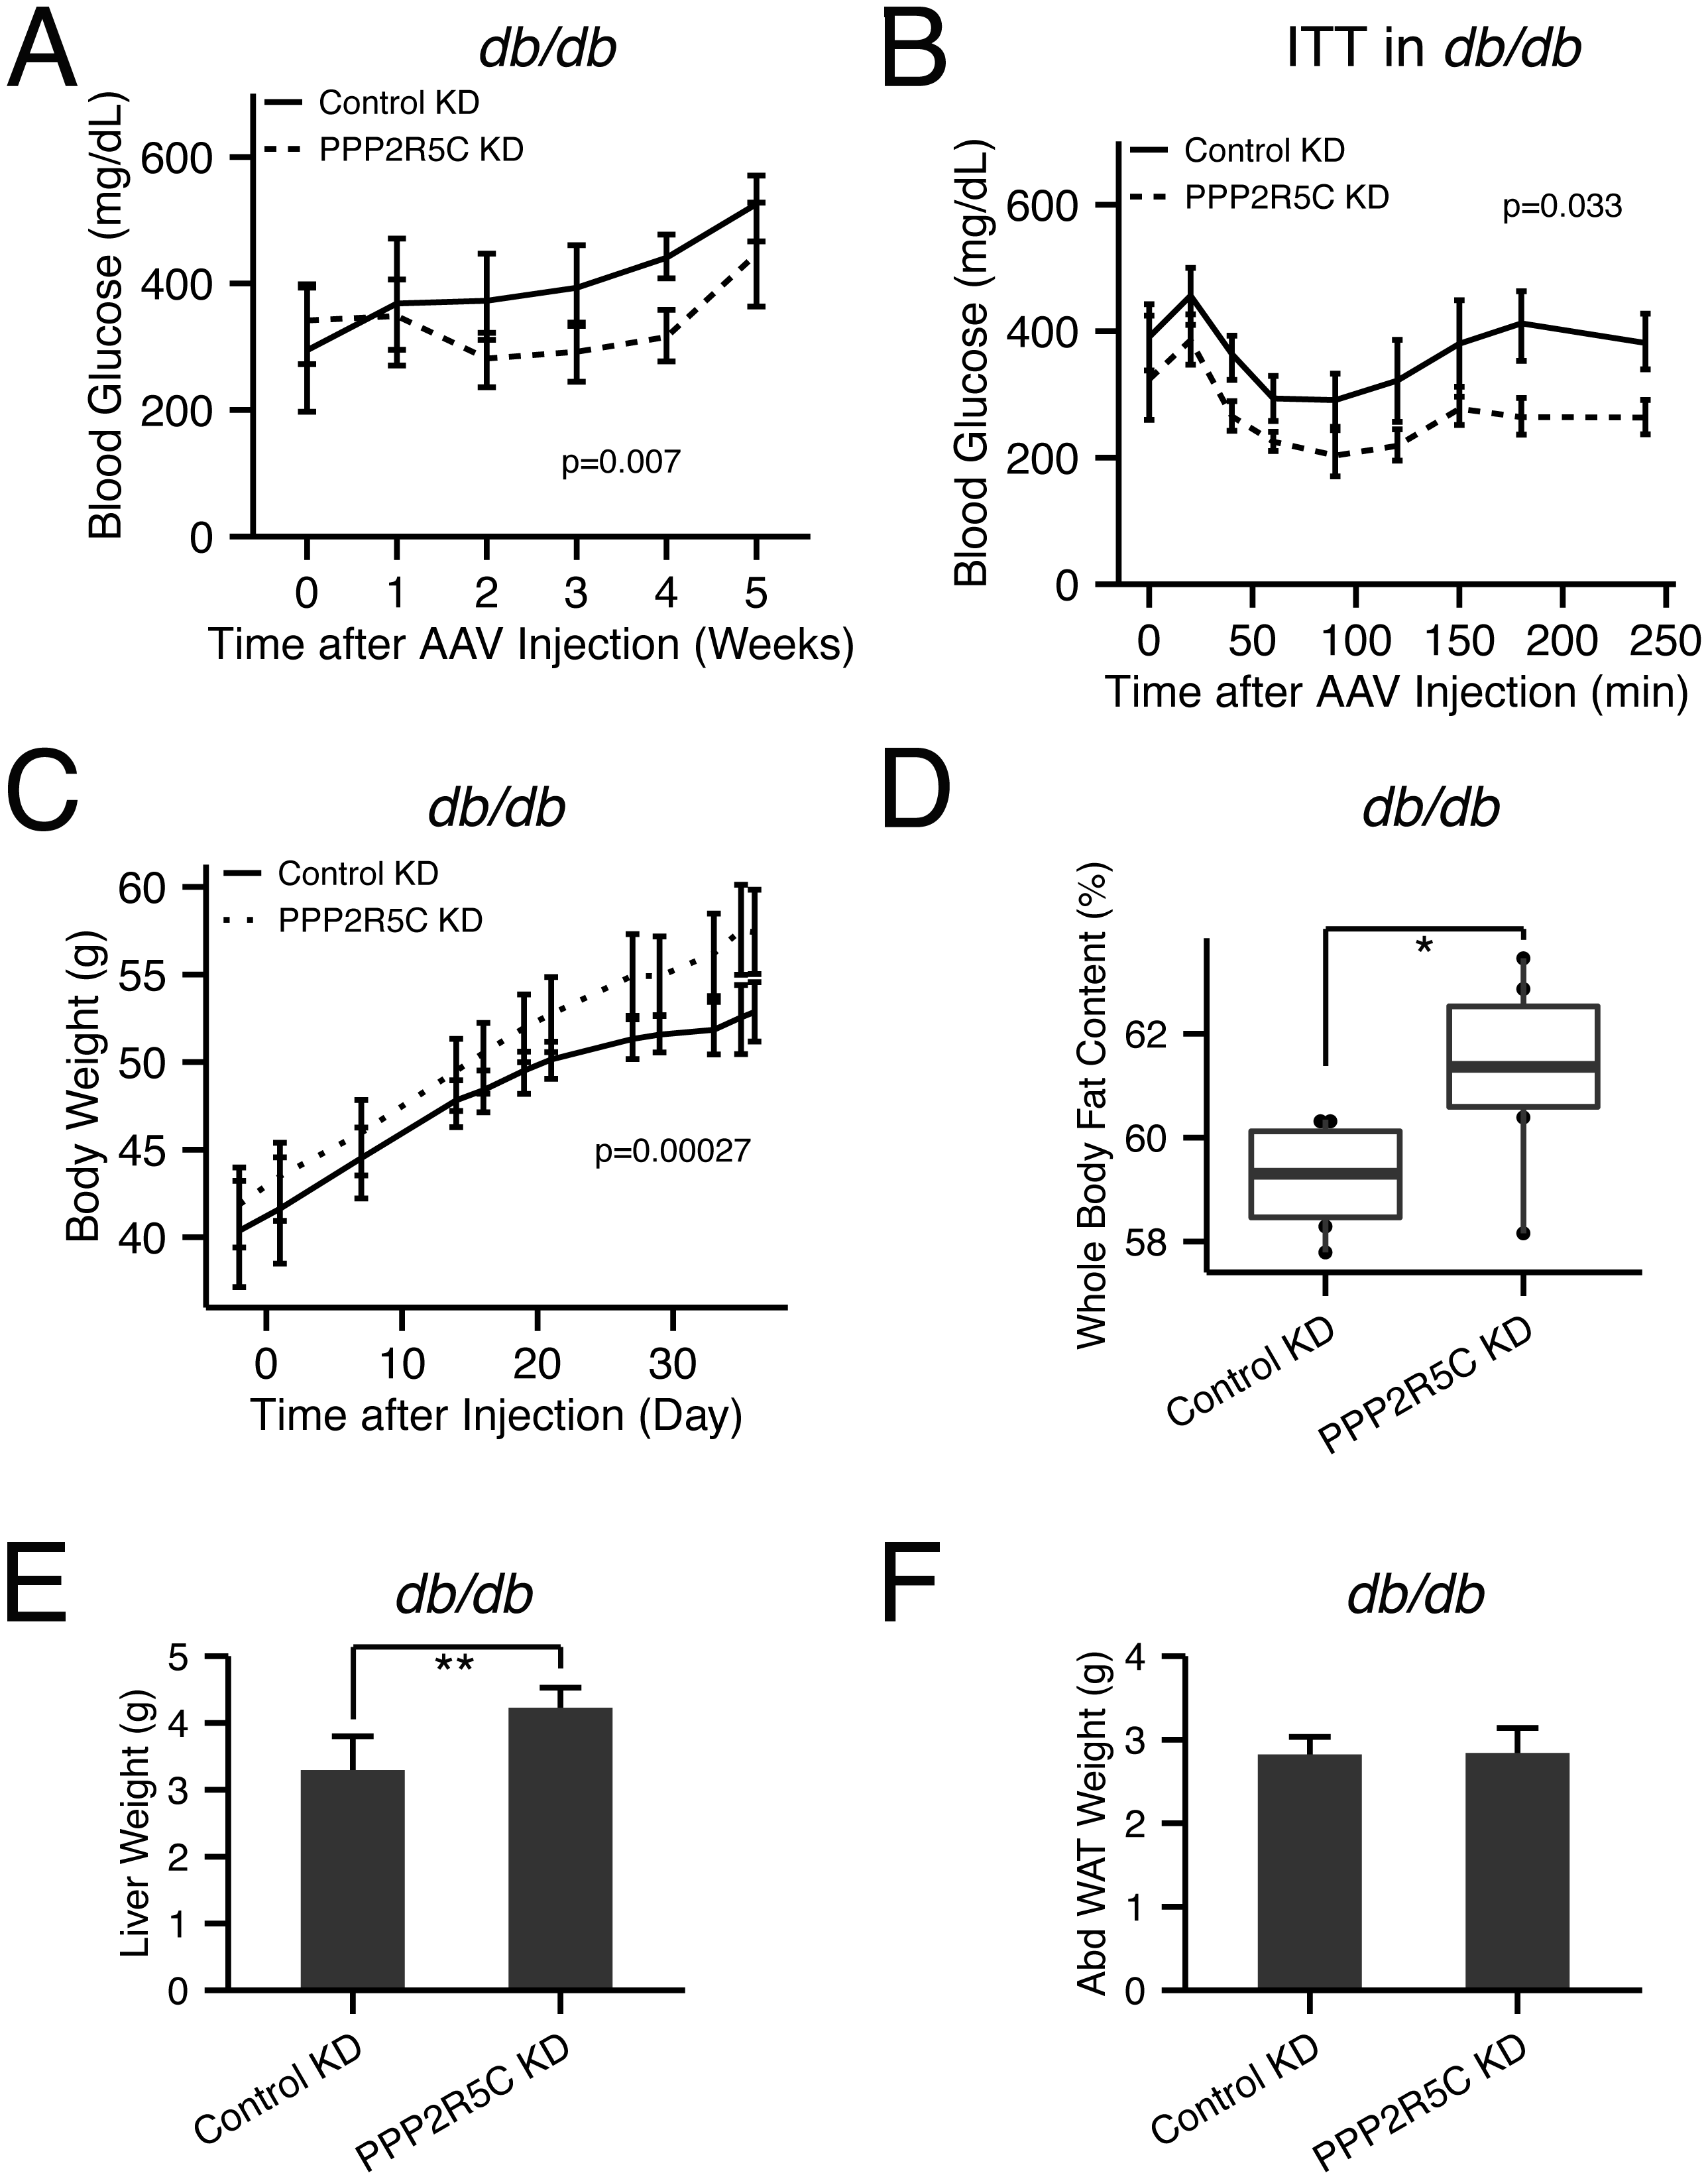 PPP2R5C HepKD in <i>db/db</i> mouse liver improves insulin sensitivity, decreases hyperglycemia, but worsens the dyslipidemia.